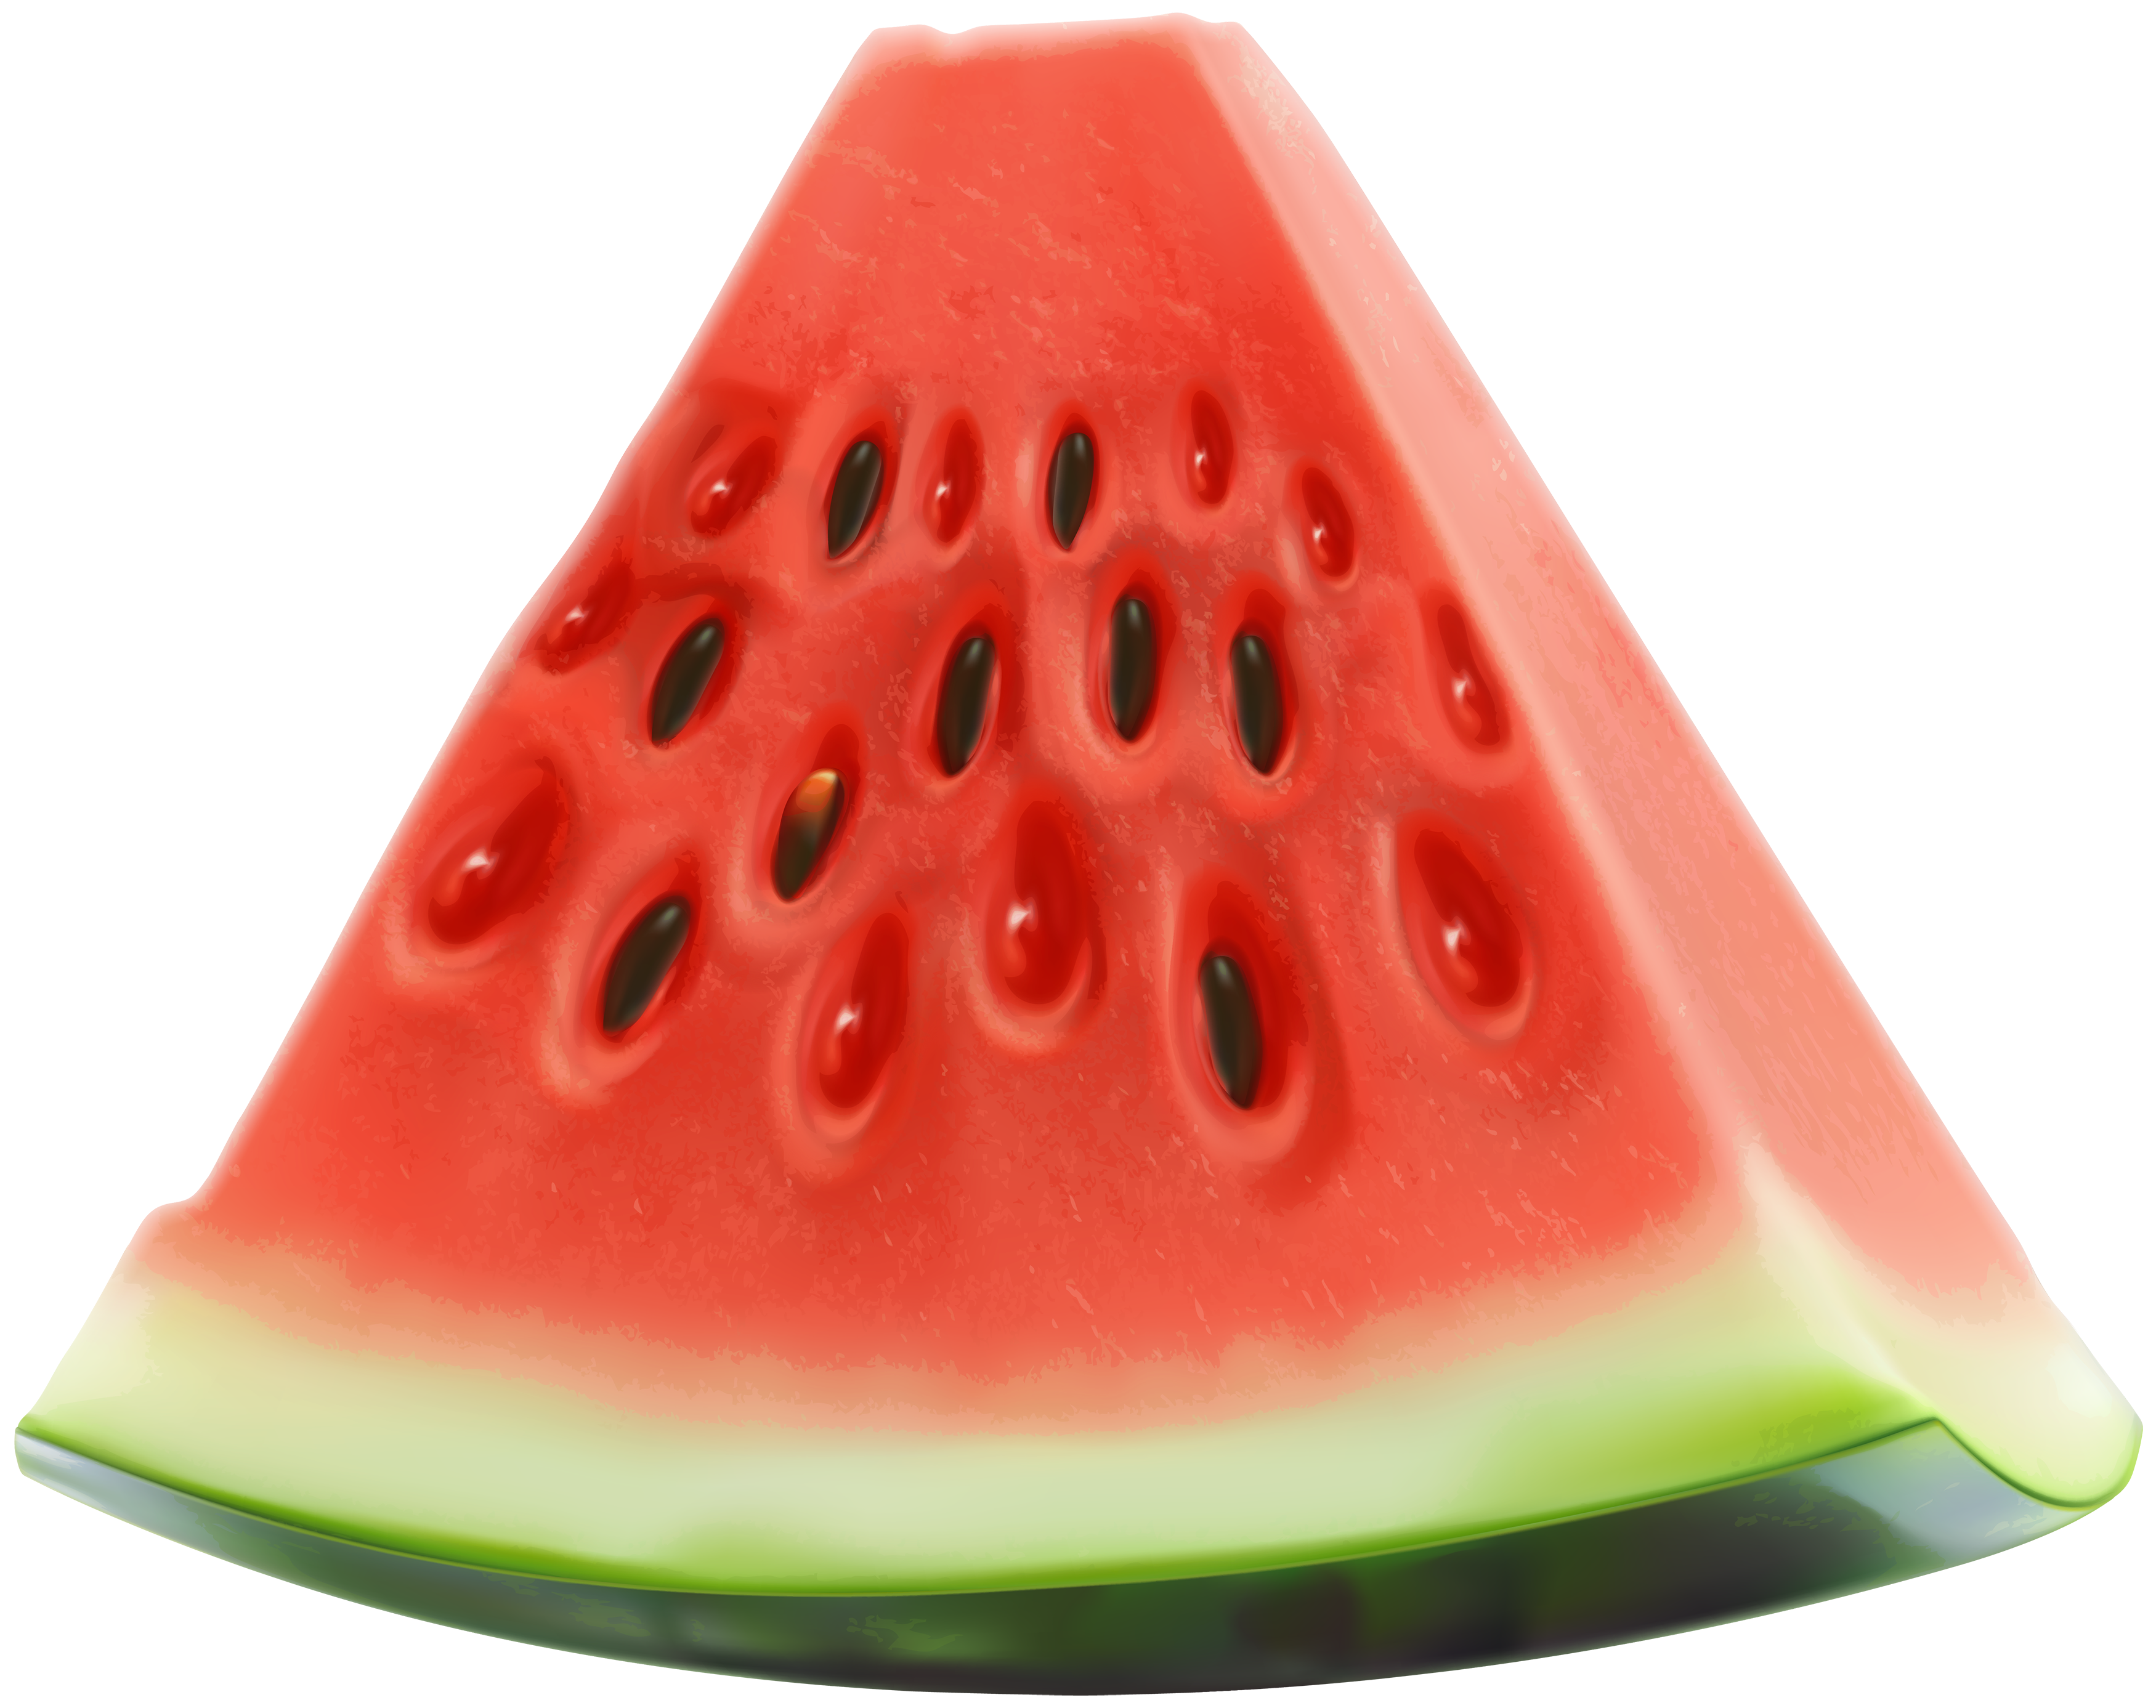 Fruit clipart watermelon. Piece of png best